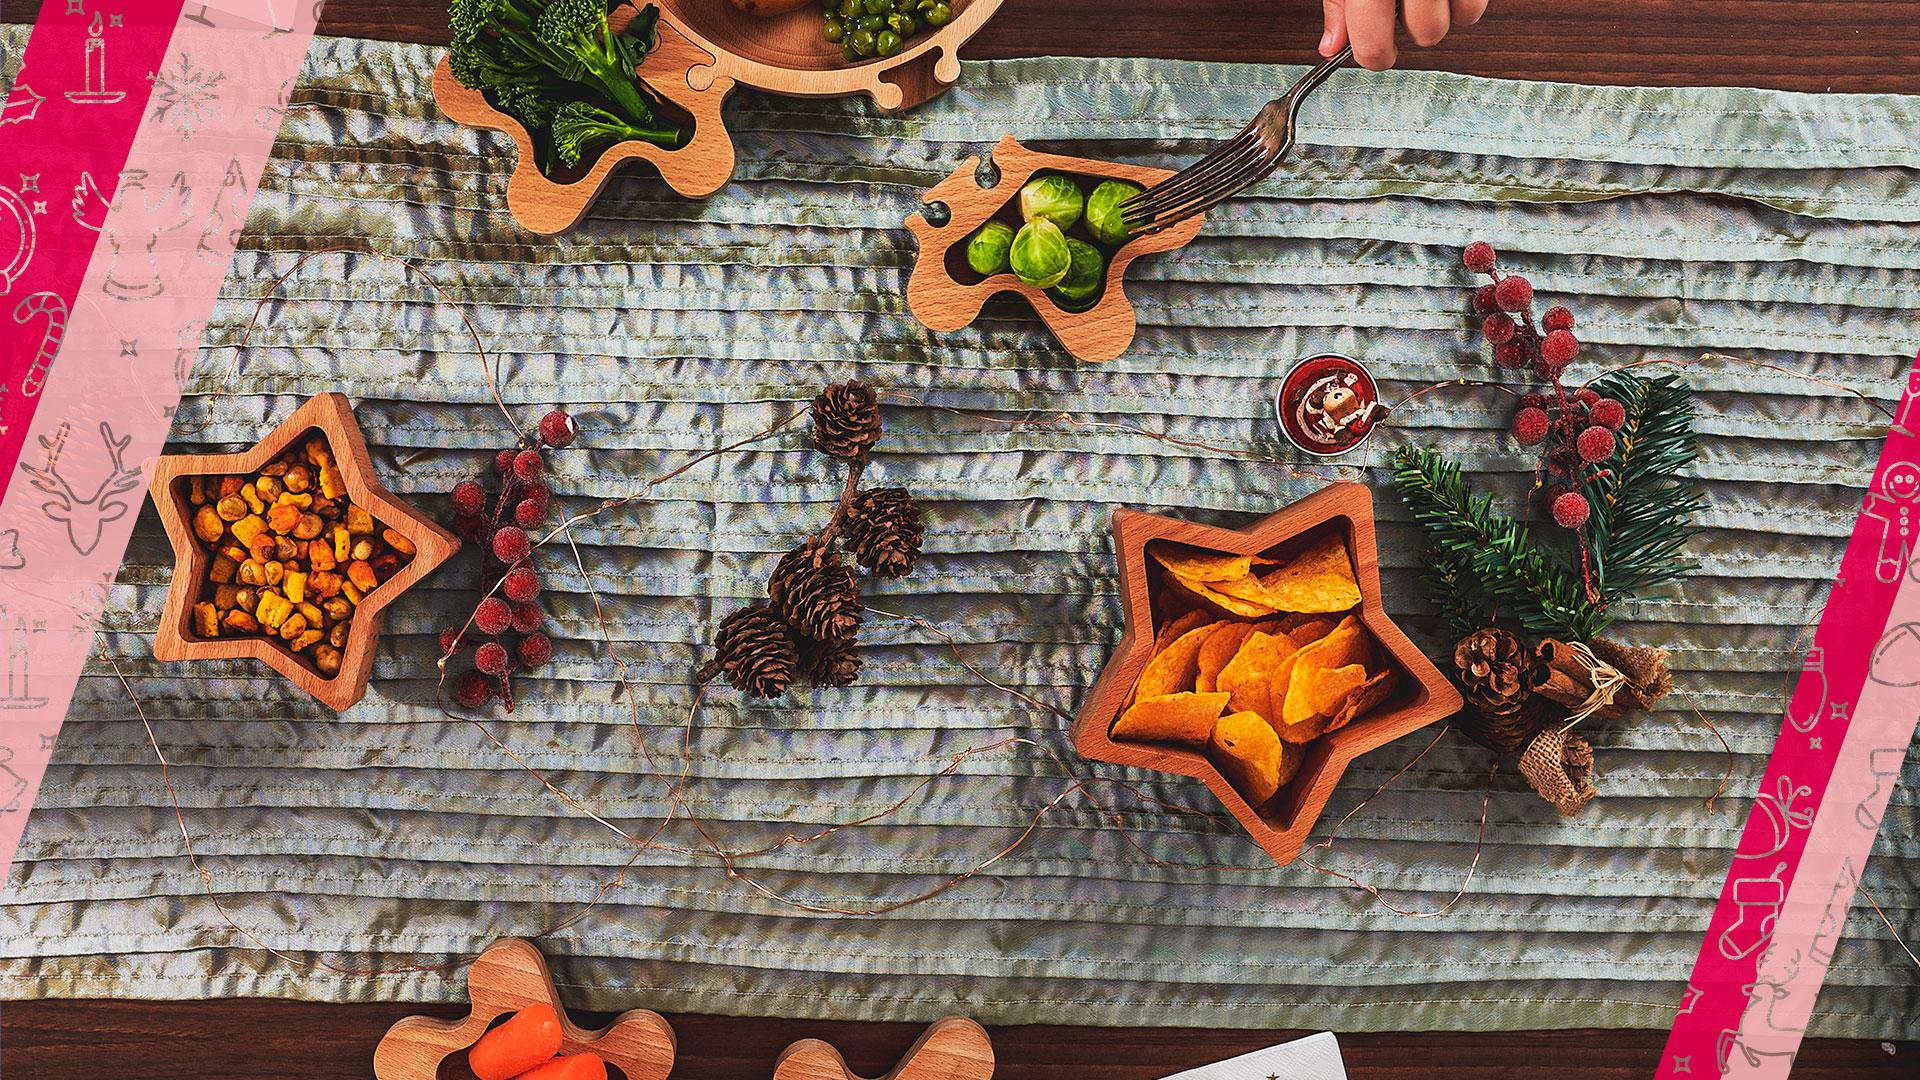 Food and drink Christmas gifts: The Wood Life Project